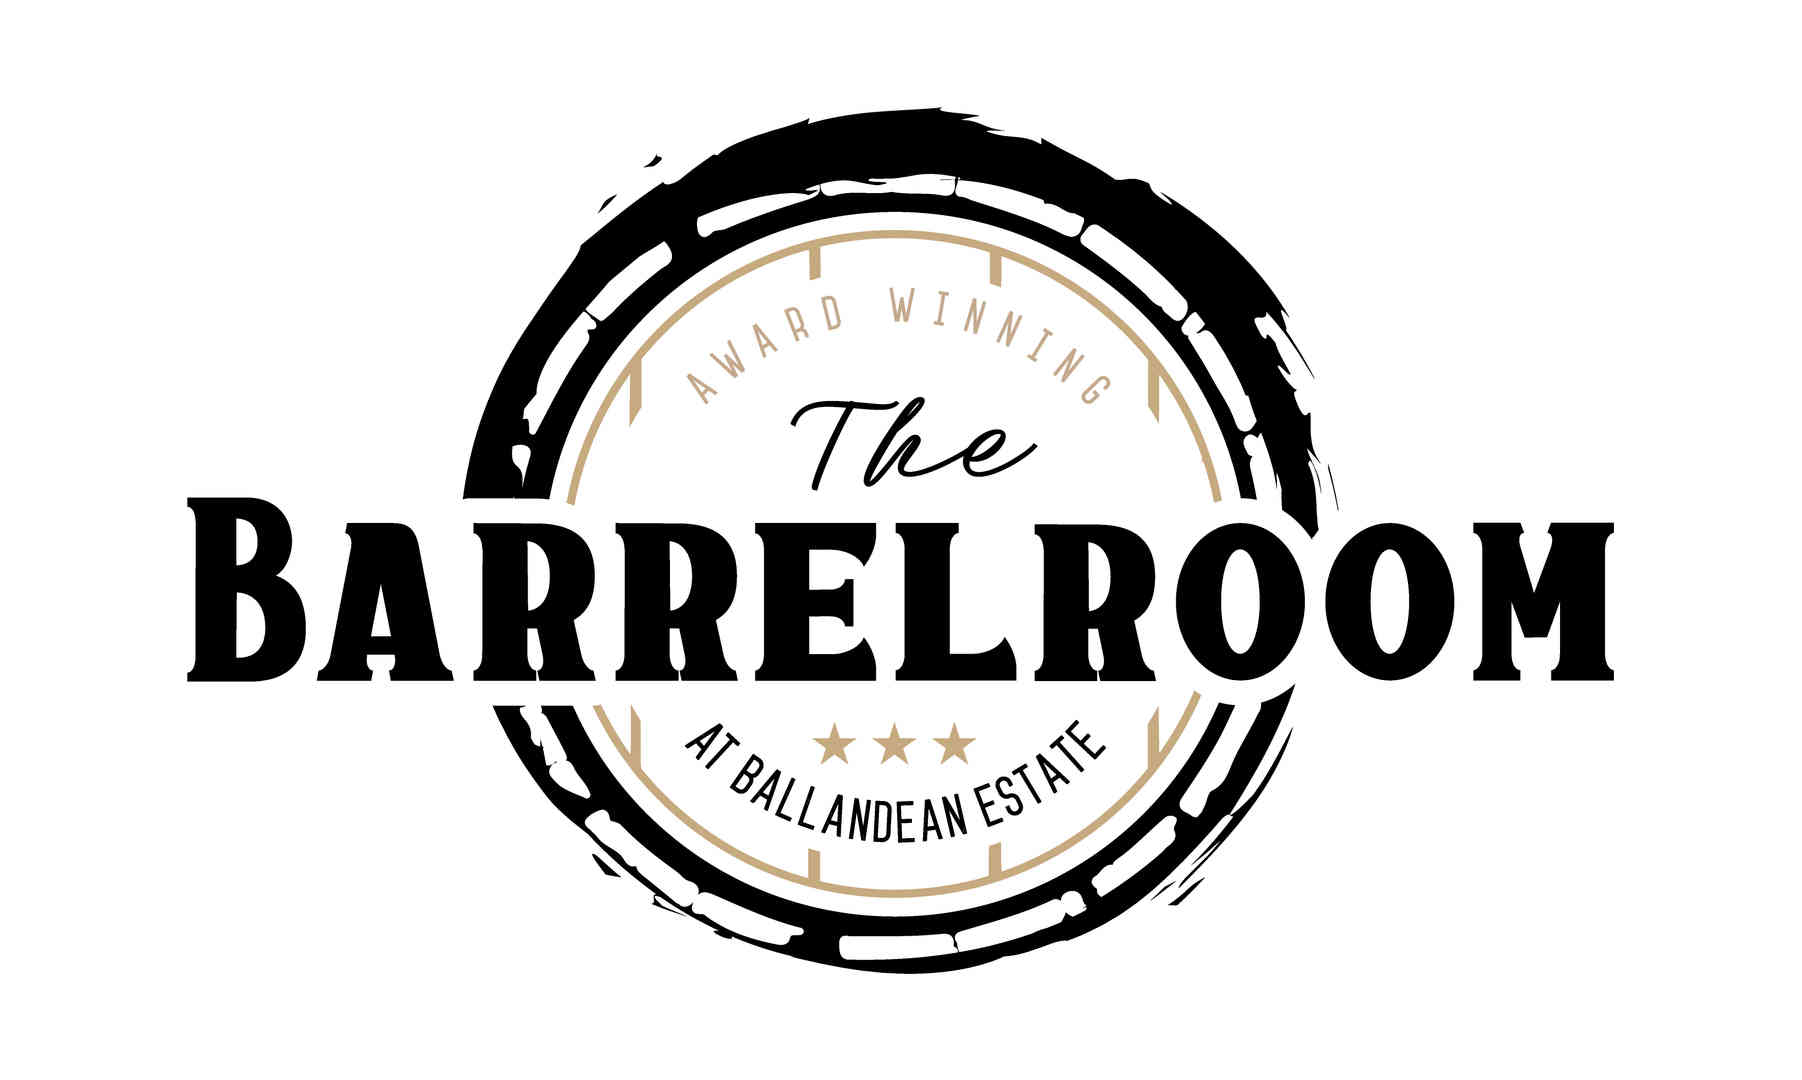 The Barrelroom Restaurant